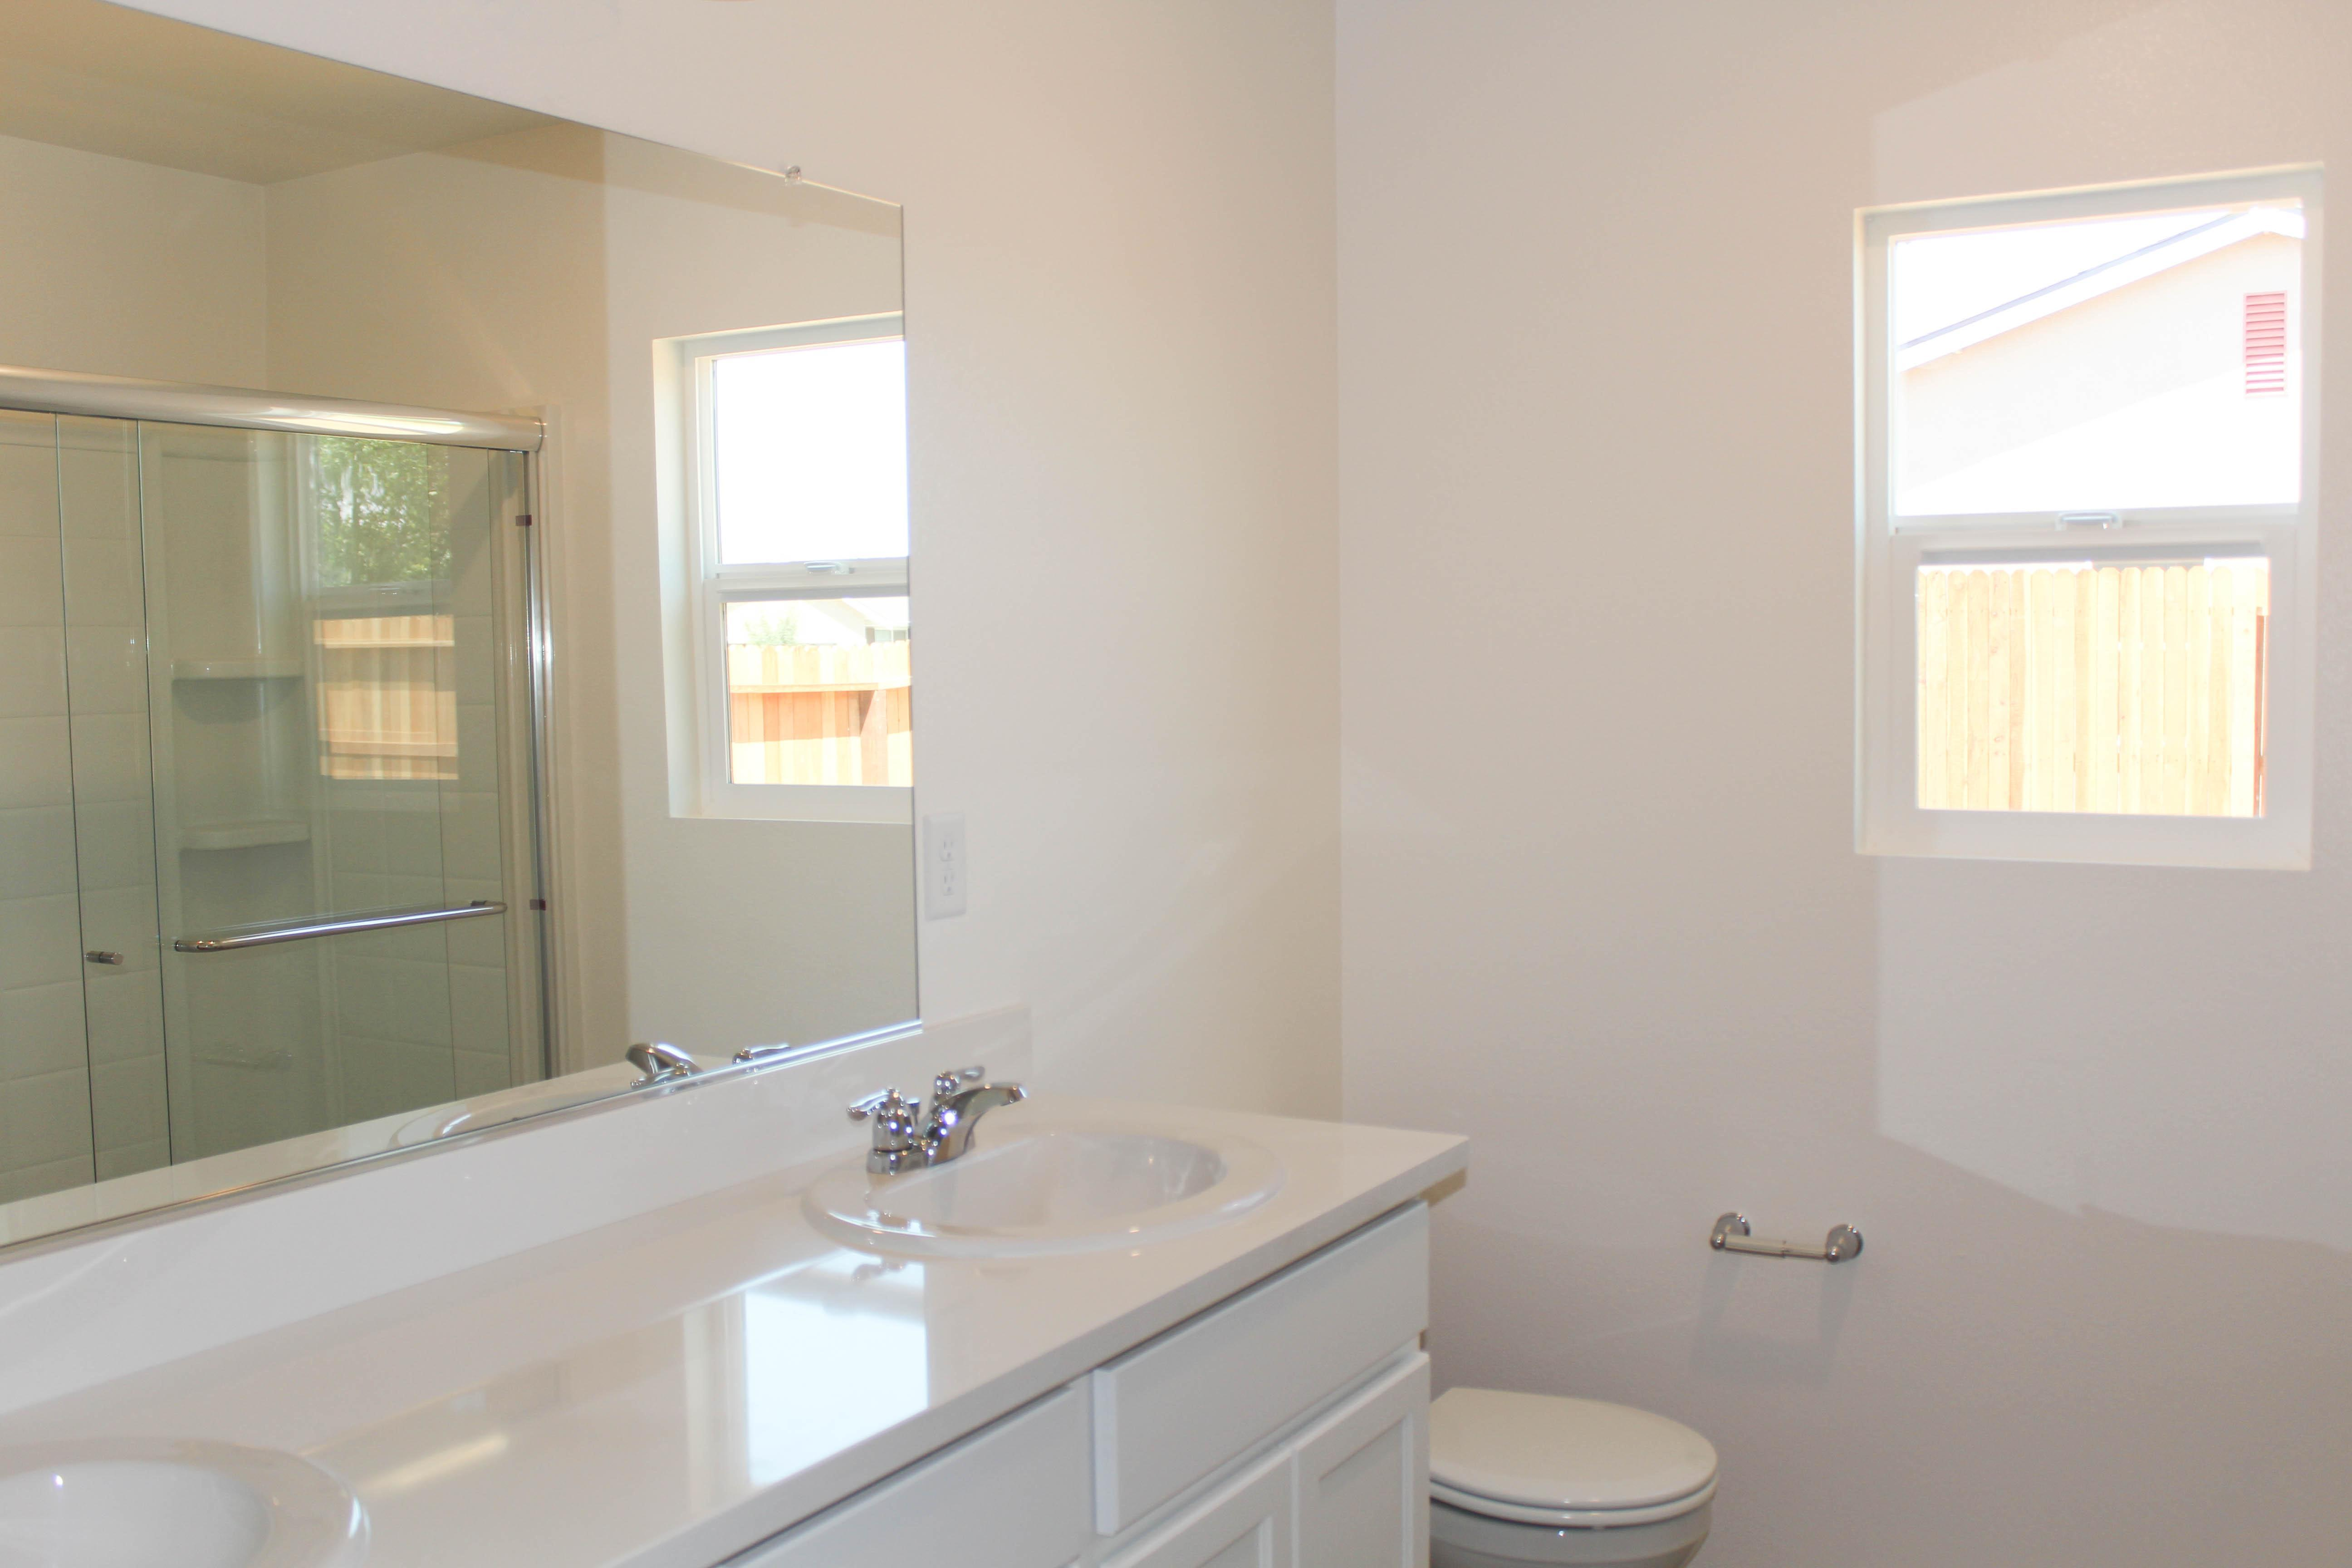 Bathroom featured in the 1C By Crowne Communities in Chico, CA